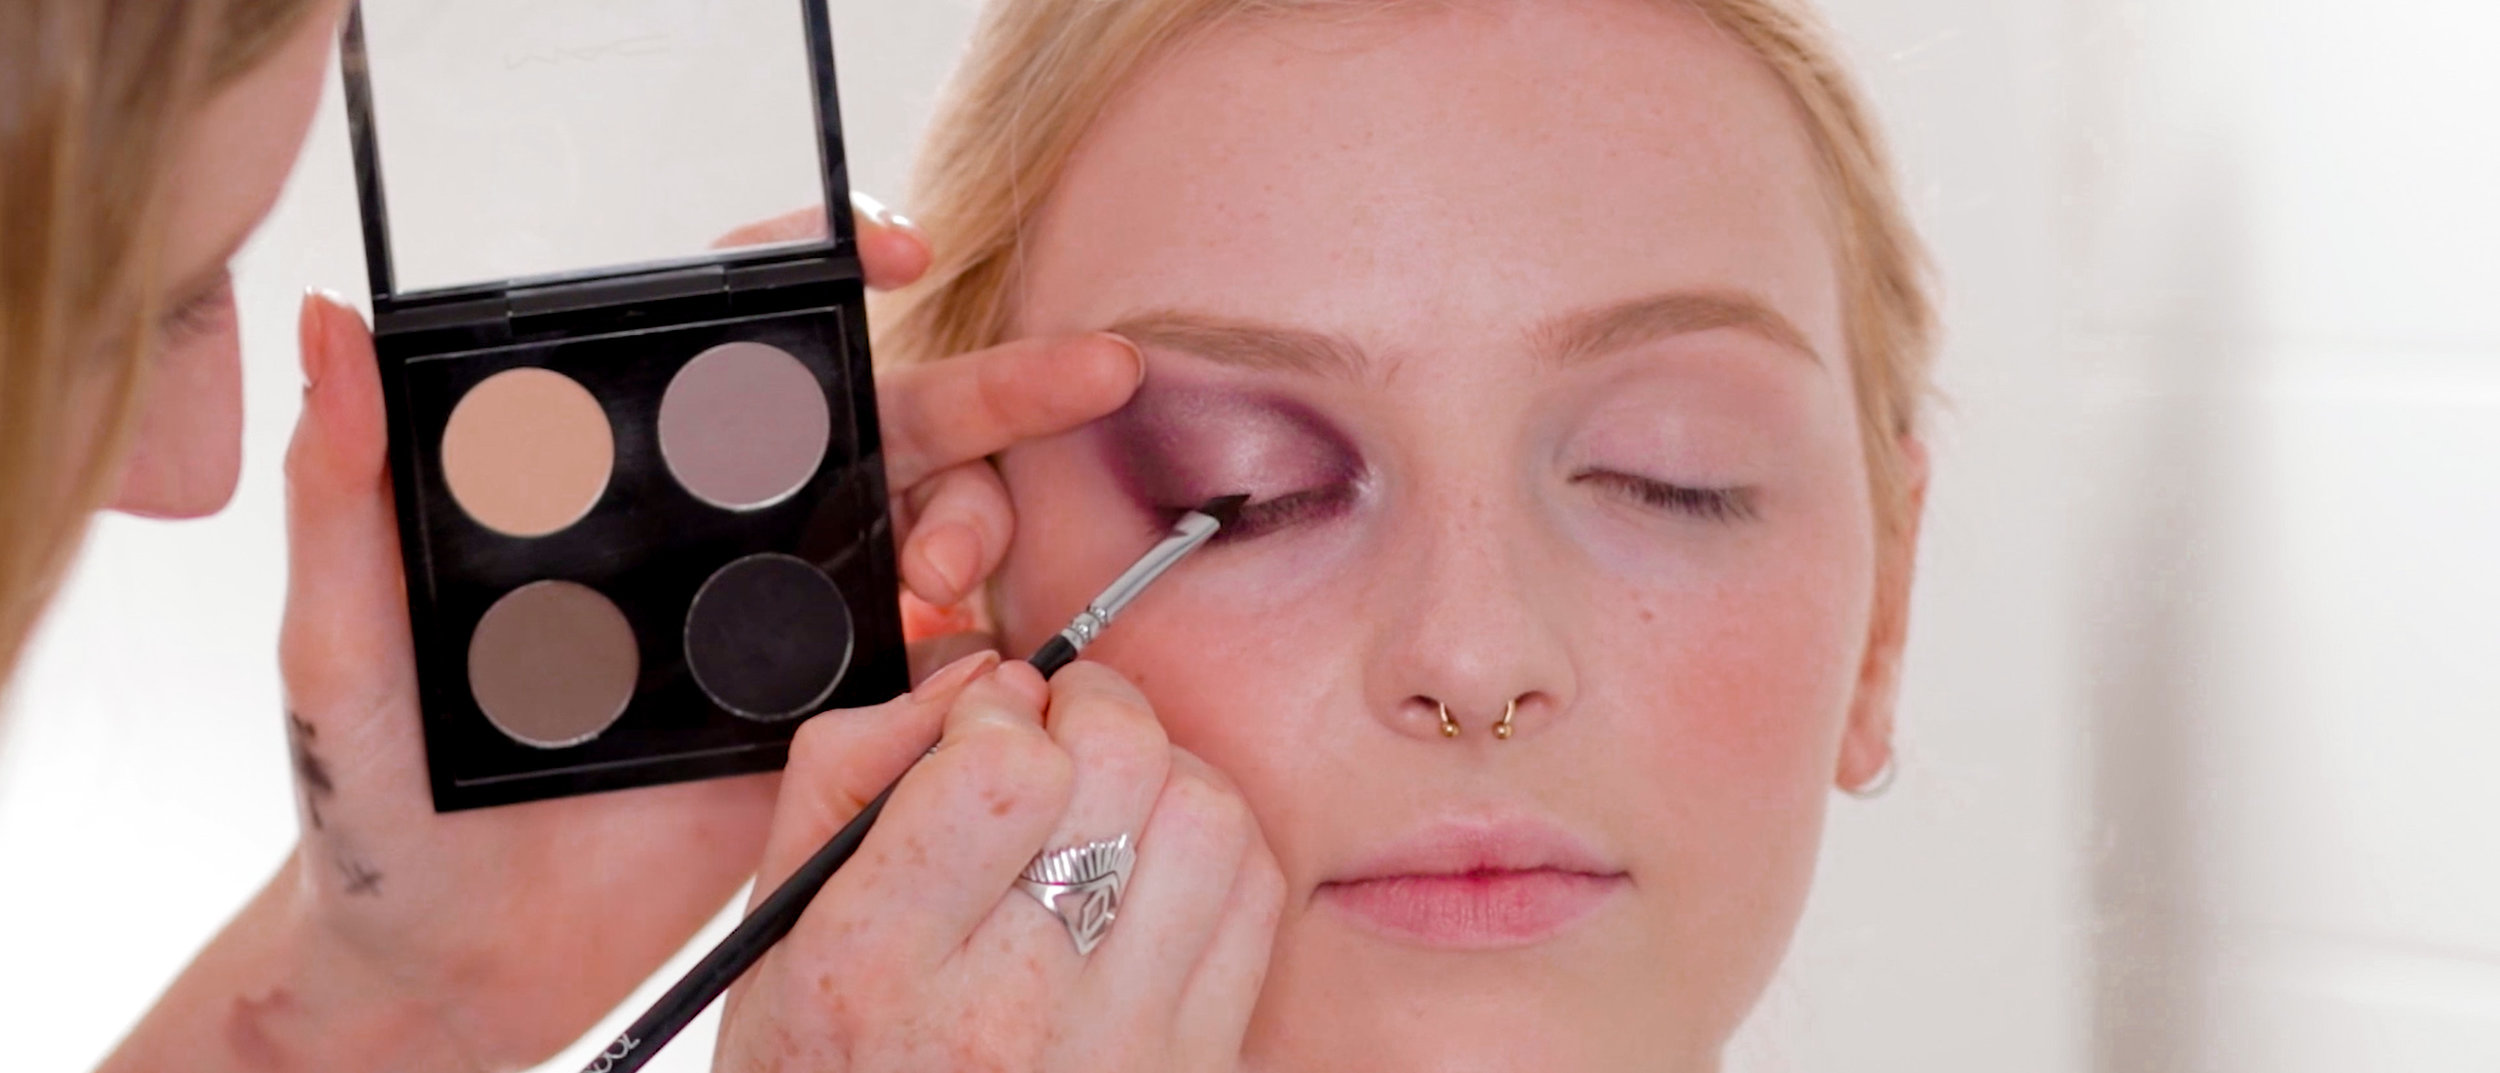 Makeup Techniques For Eyes, Lips & Brows -